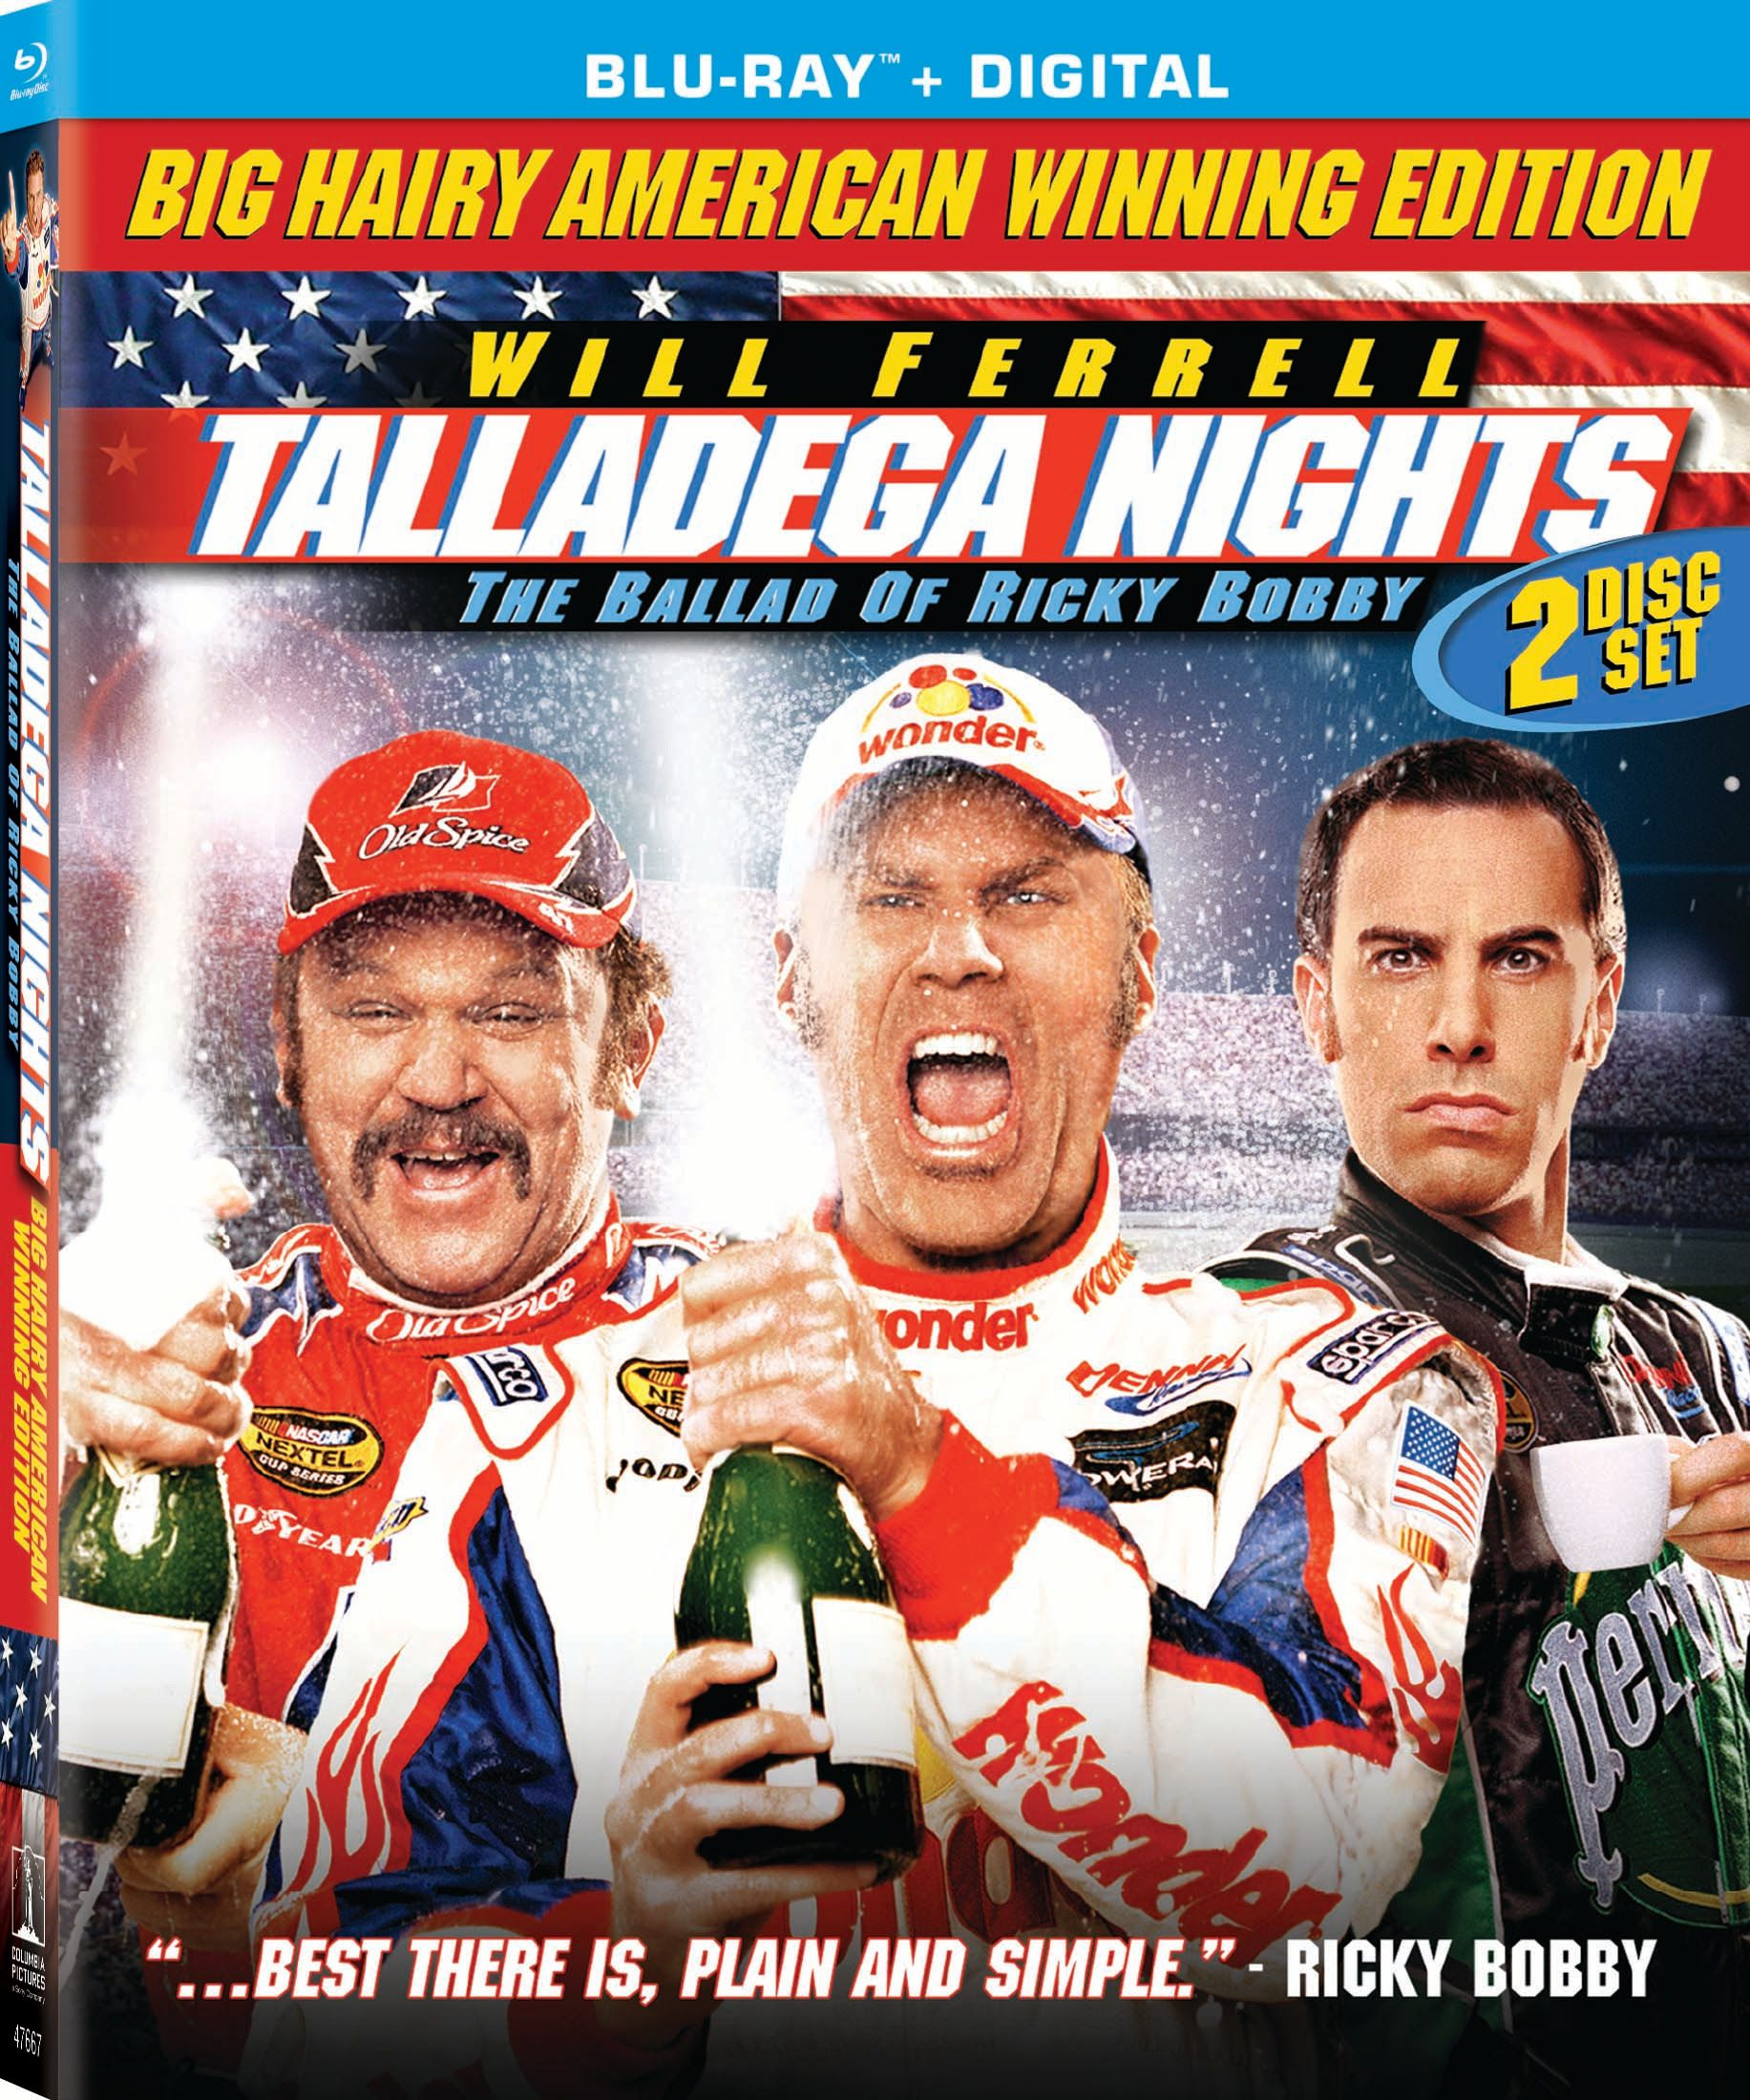 Will Ferrell's Talladega Nights has an all-new Blu-ray